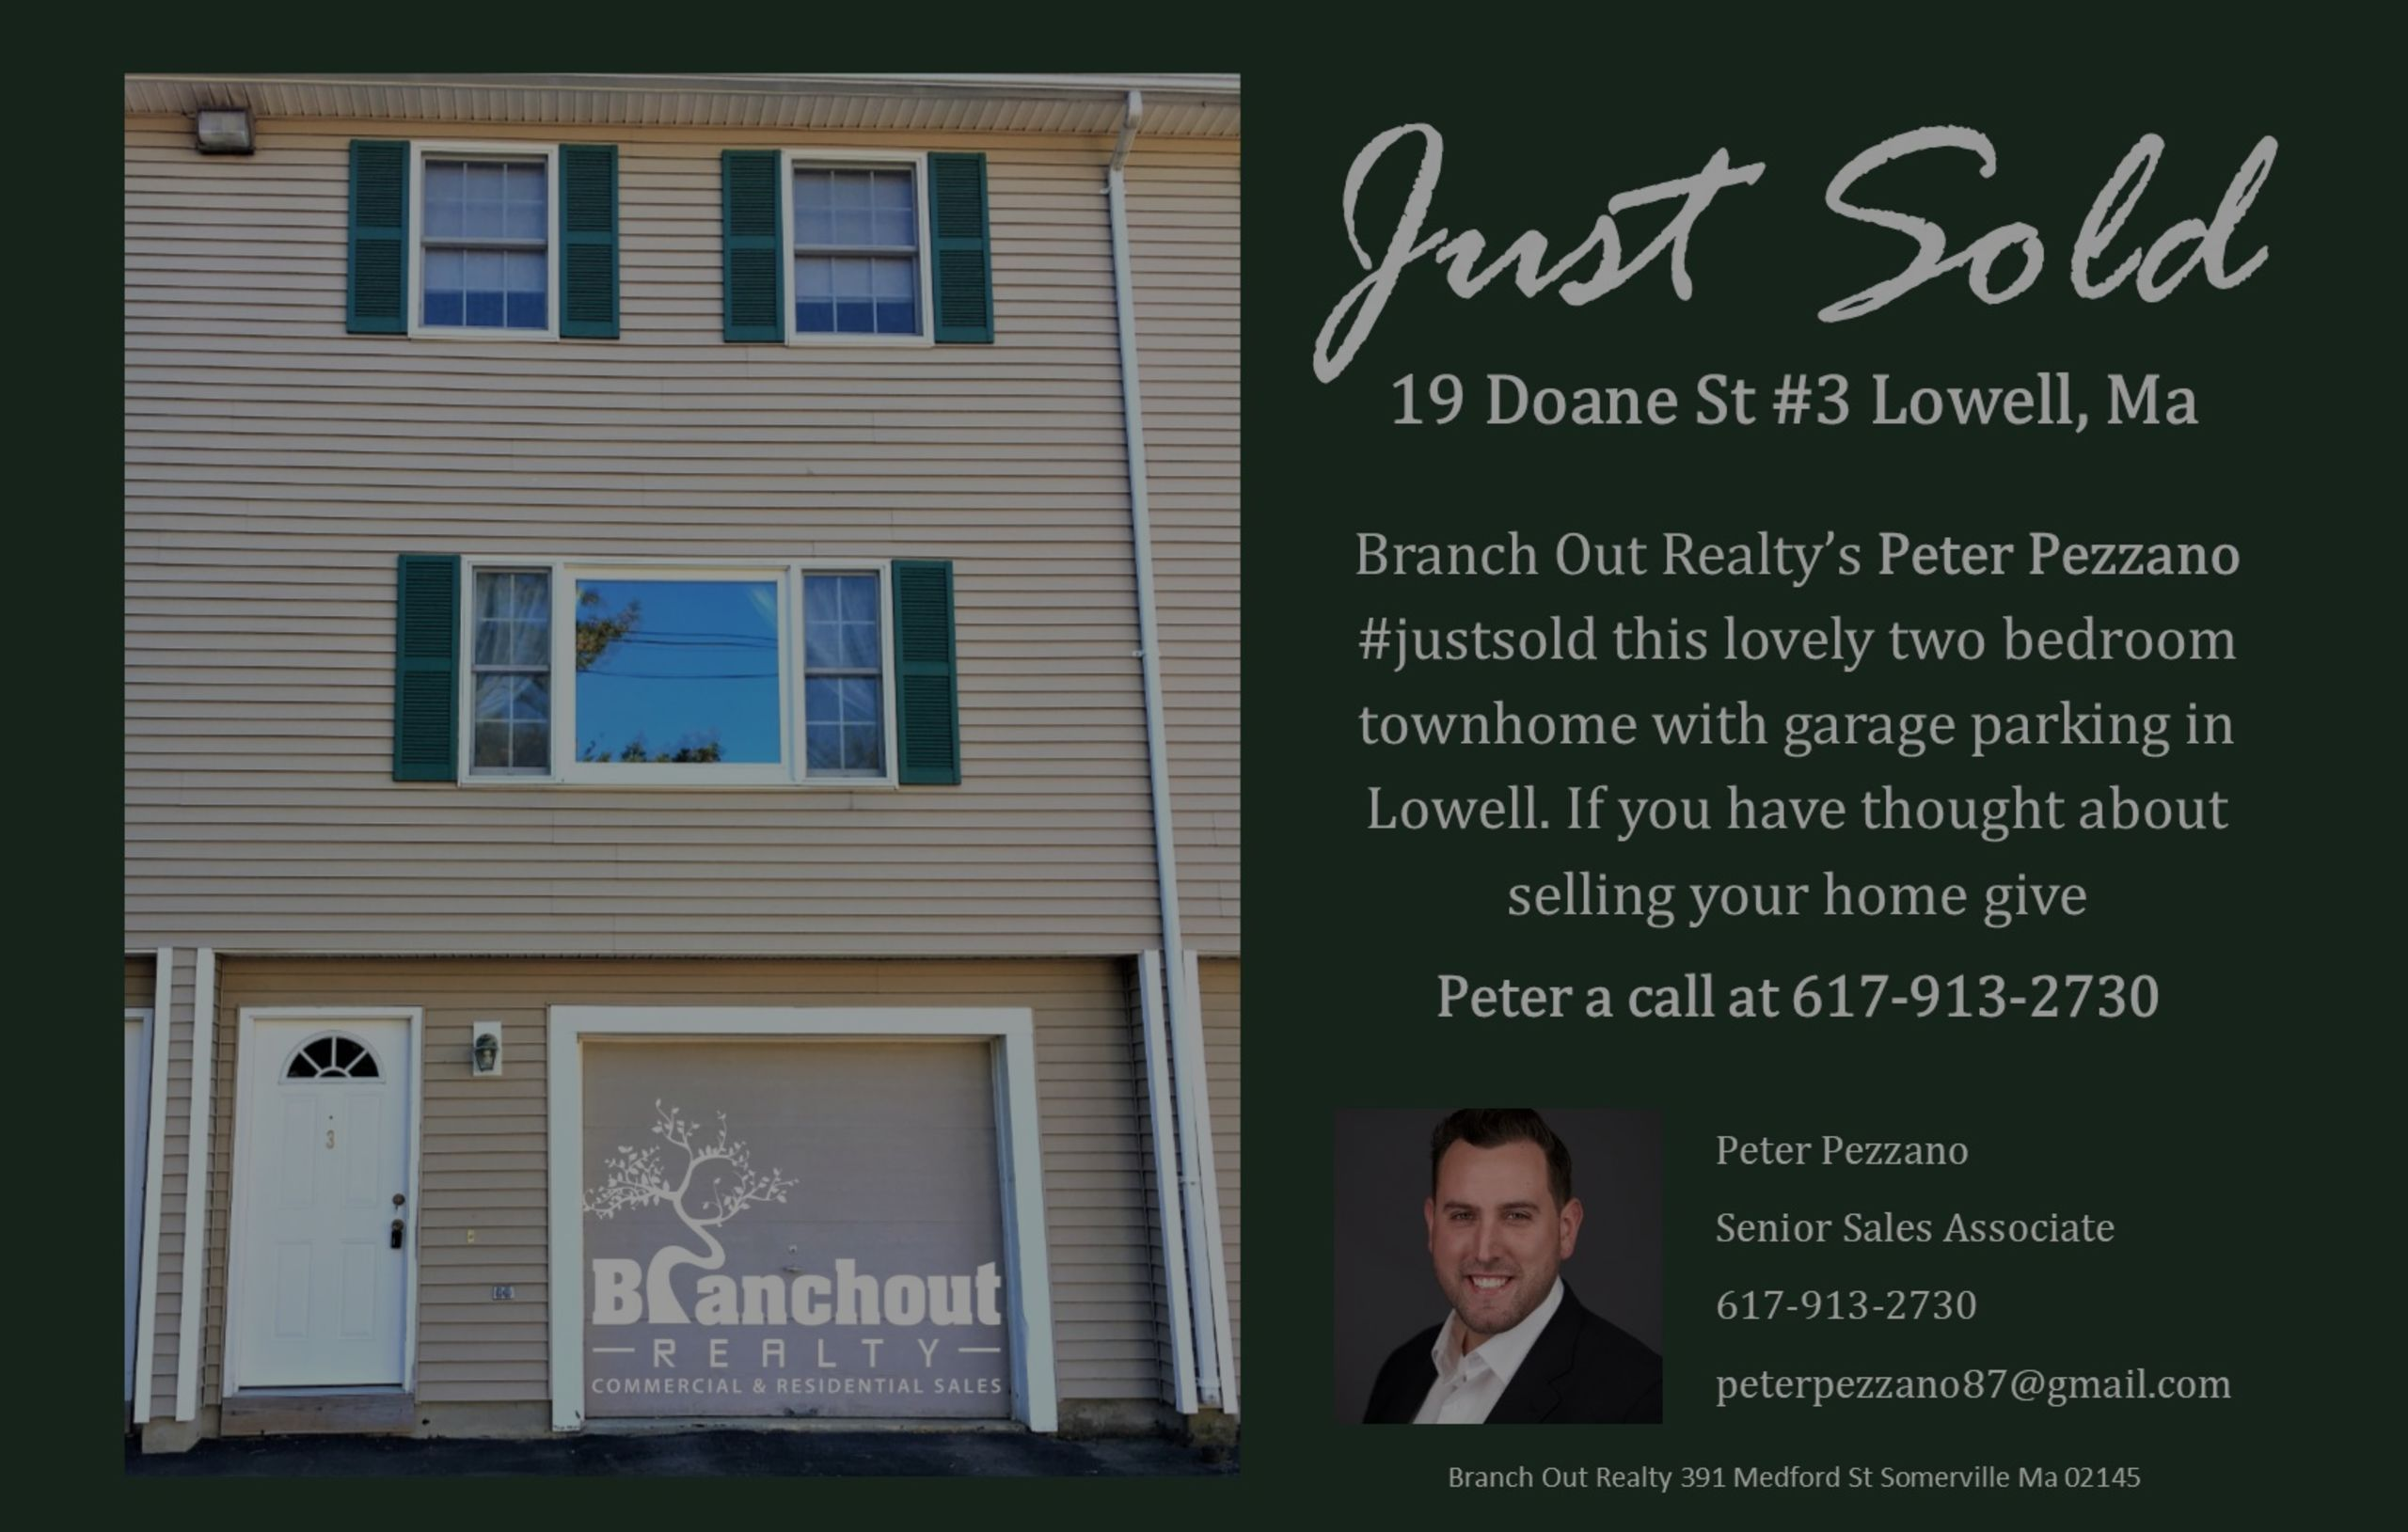 Just Sold – Two-Bedroom In Lowell!